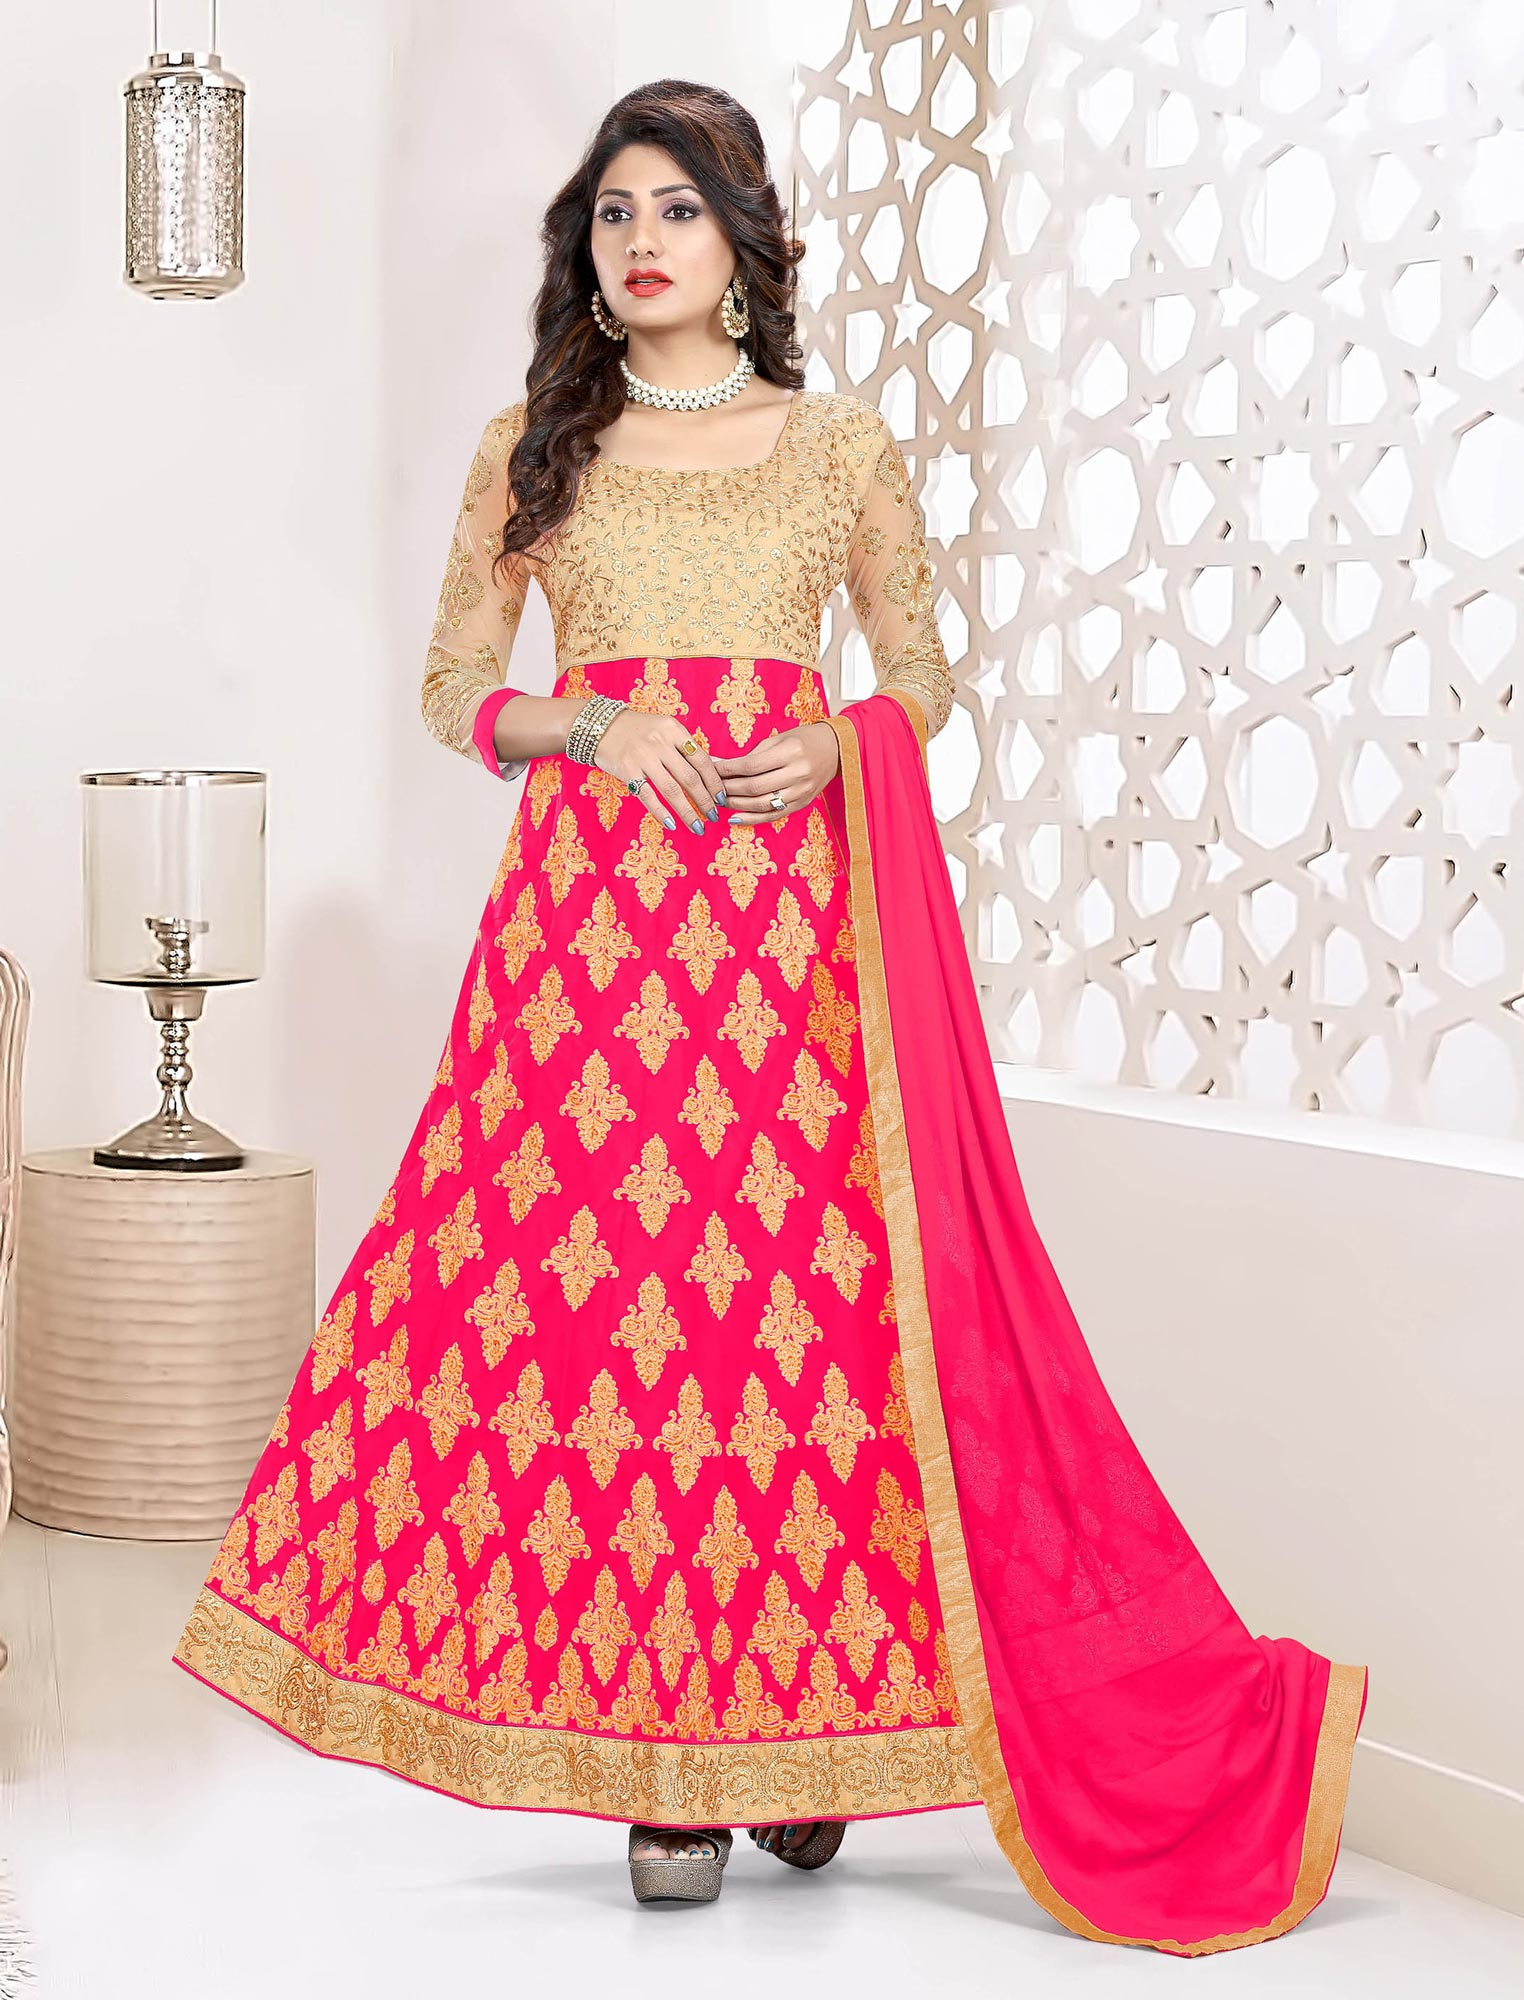 Ravishing Fuschia Pink Colored Heavy Embroidered Art Silk-Net Lehenga / Anarkali